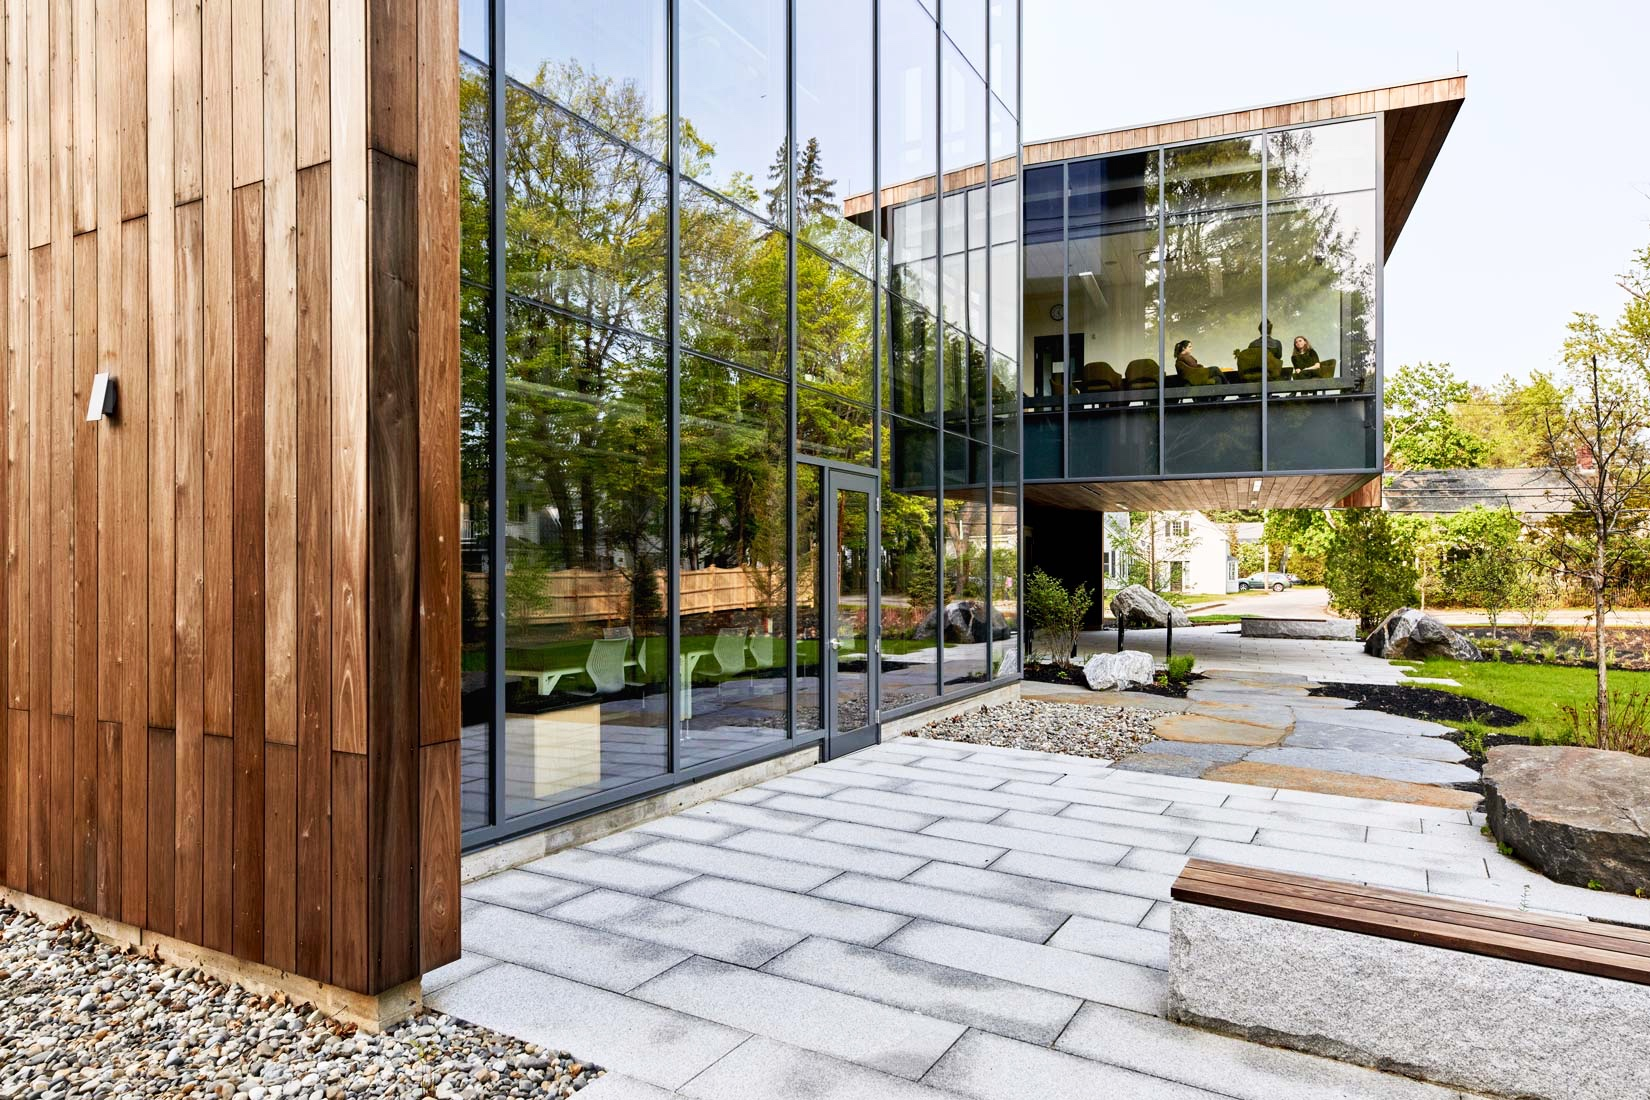 Transparency was an operative concept in the building's design and is evident in the way the classroom and conference rooms can be easily viewed from the interior and exterior.